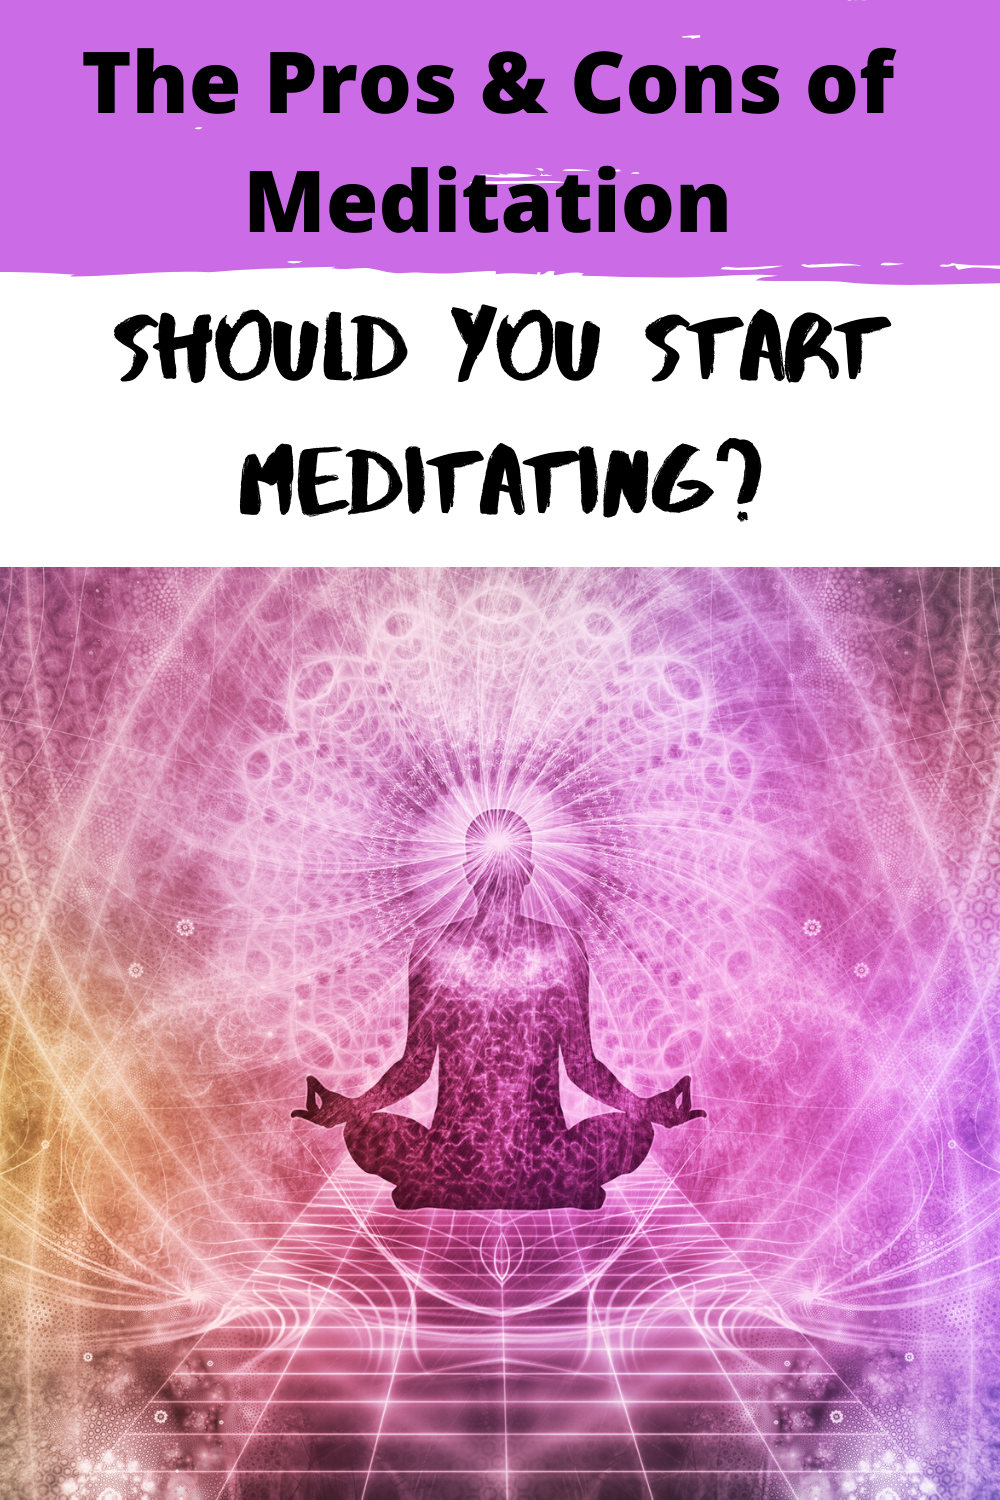 The Pros & Cons of Meditation